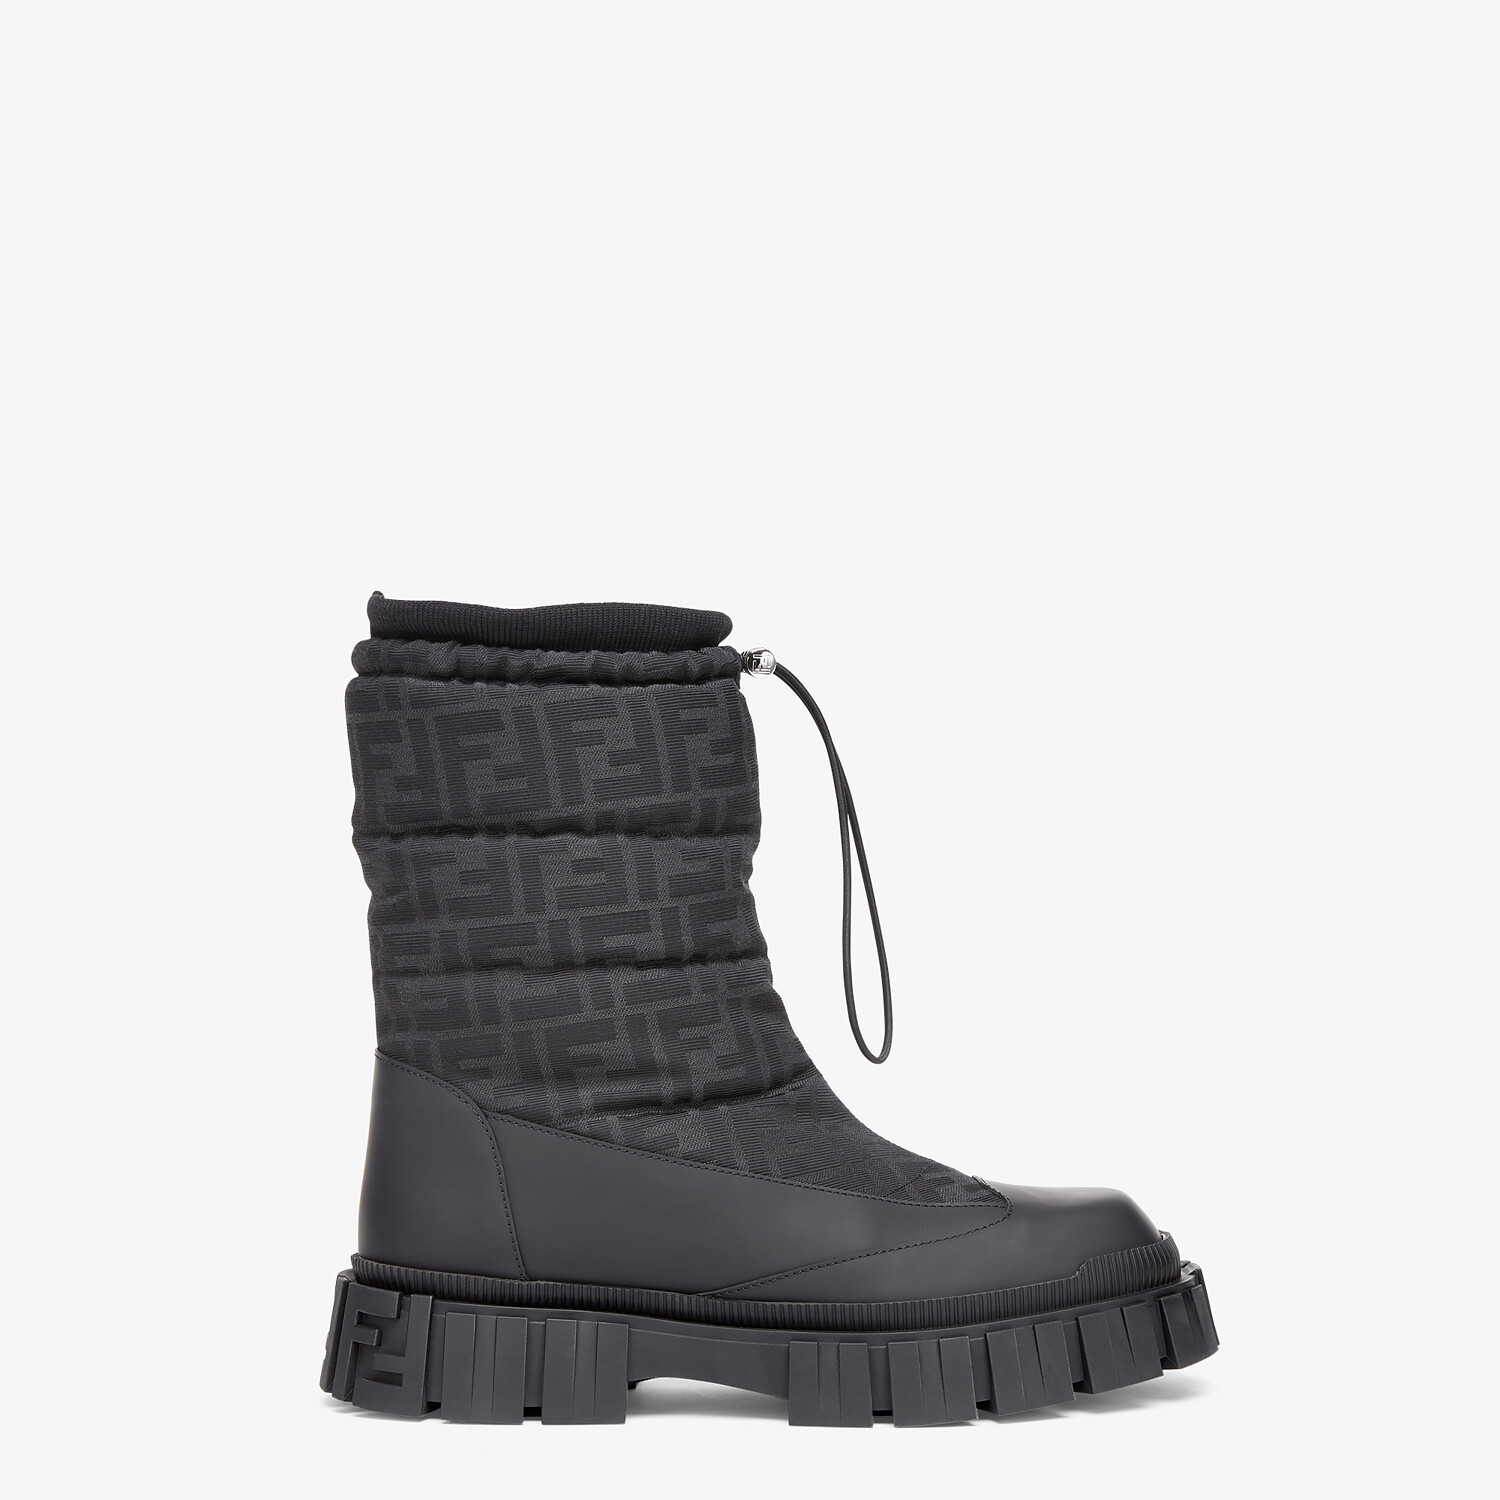 FENDI ANKLE BOOTS - Black leather boots - view 1 detail